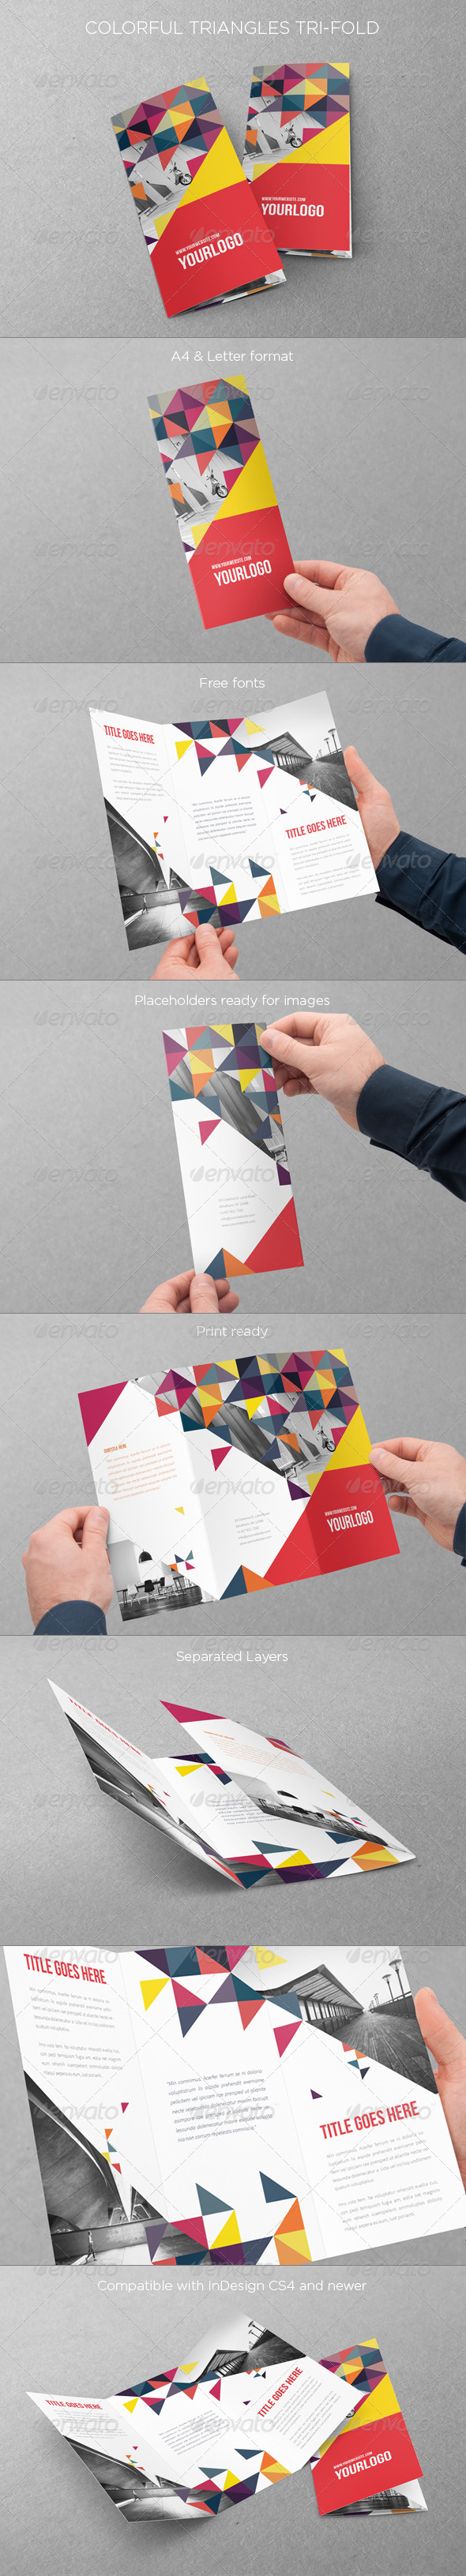 Colorful Triangles Trifold - Brochures Print Templates